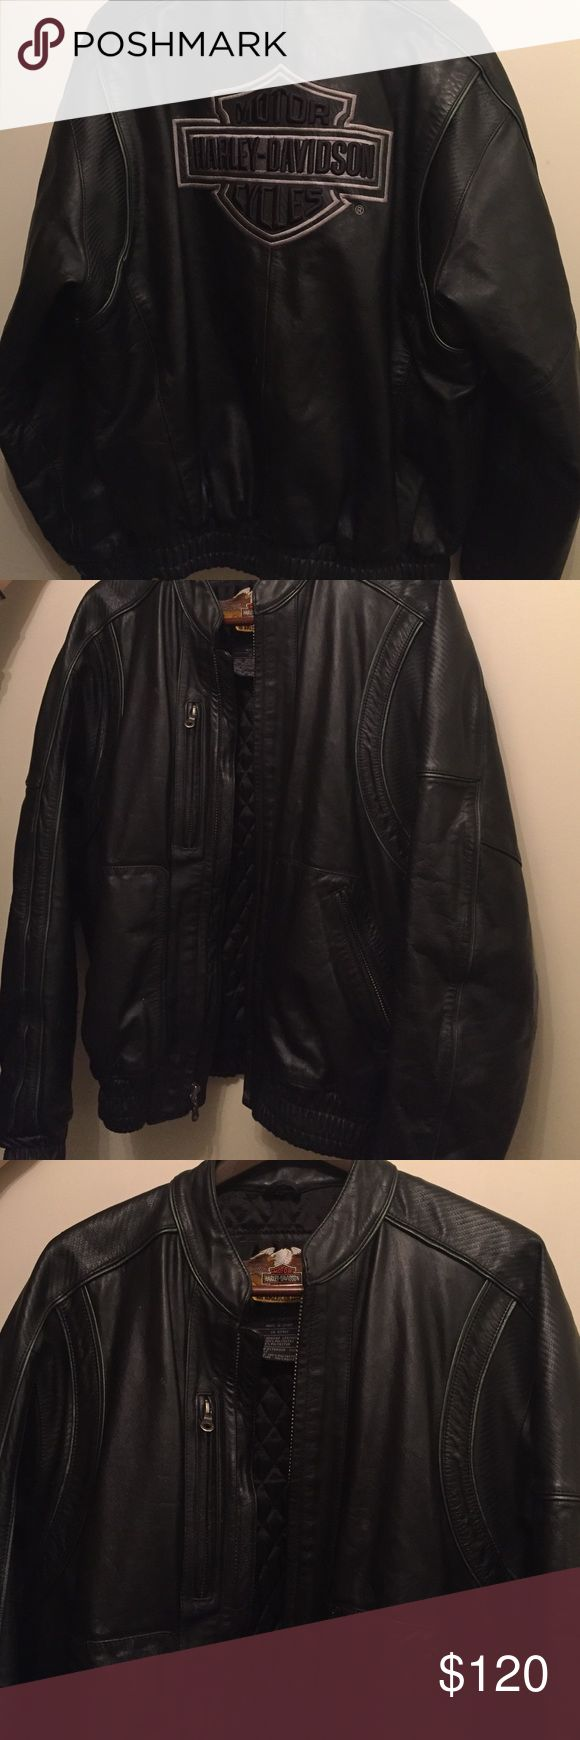 Harley Davidson leather jacket This vintage Harley jacket is perfect for fall or winter. It is in great condition! Genuine leather! Harley-Davidson Jackets & Coats